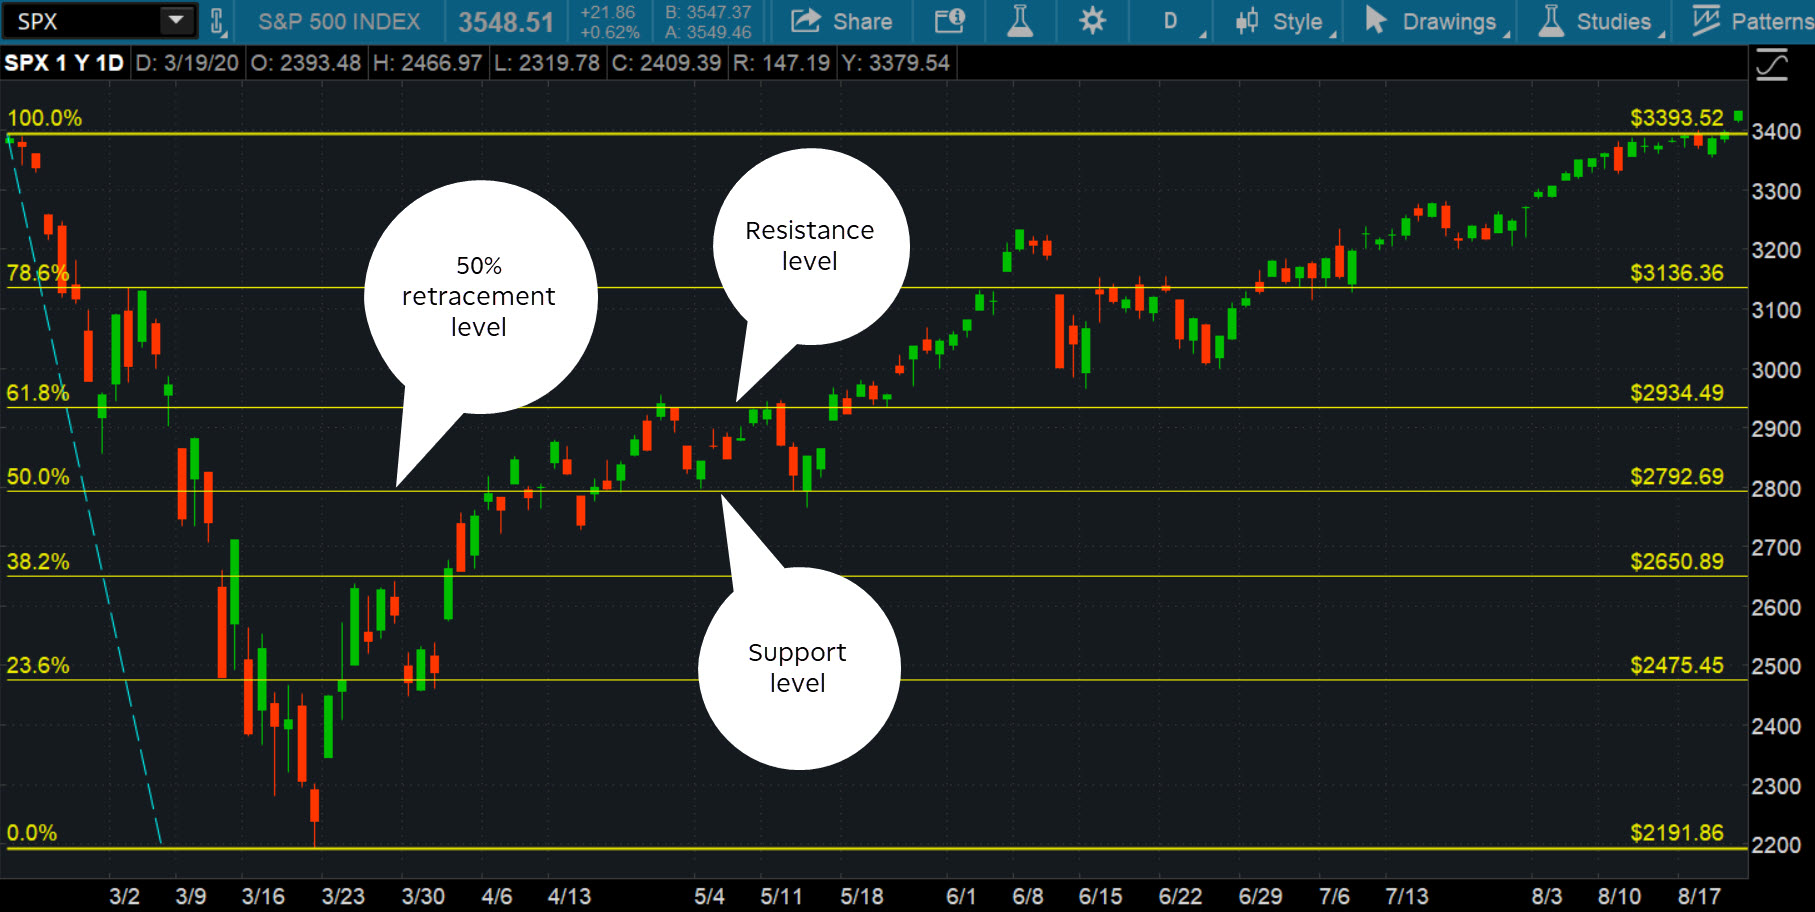 How to apply Fibonacci sequence to thinkorswim charts